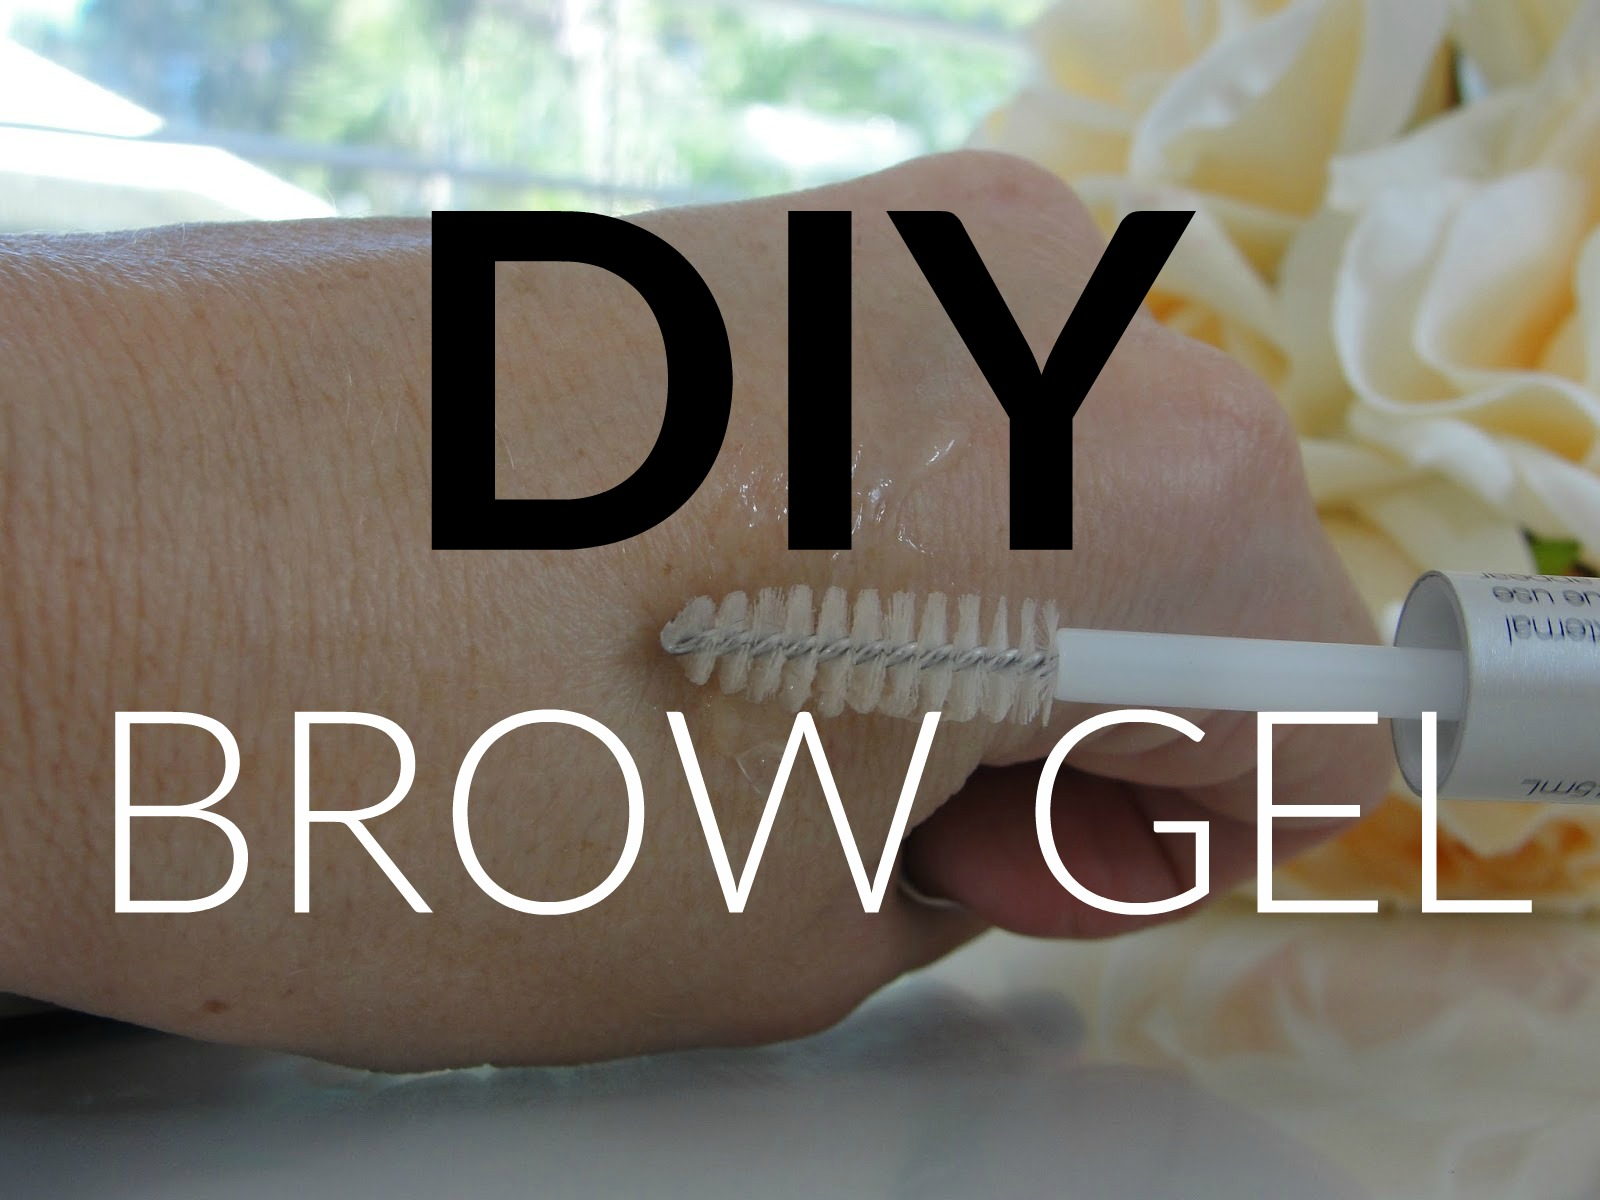 Diy Brow Gel Hack That Will Save You Money